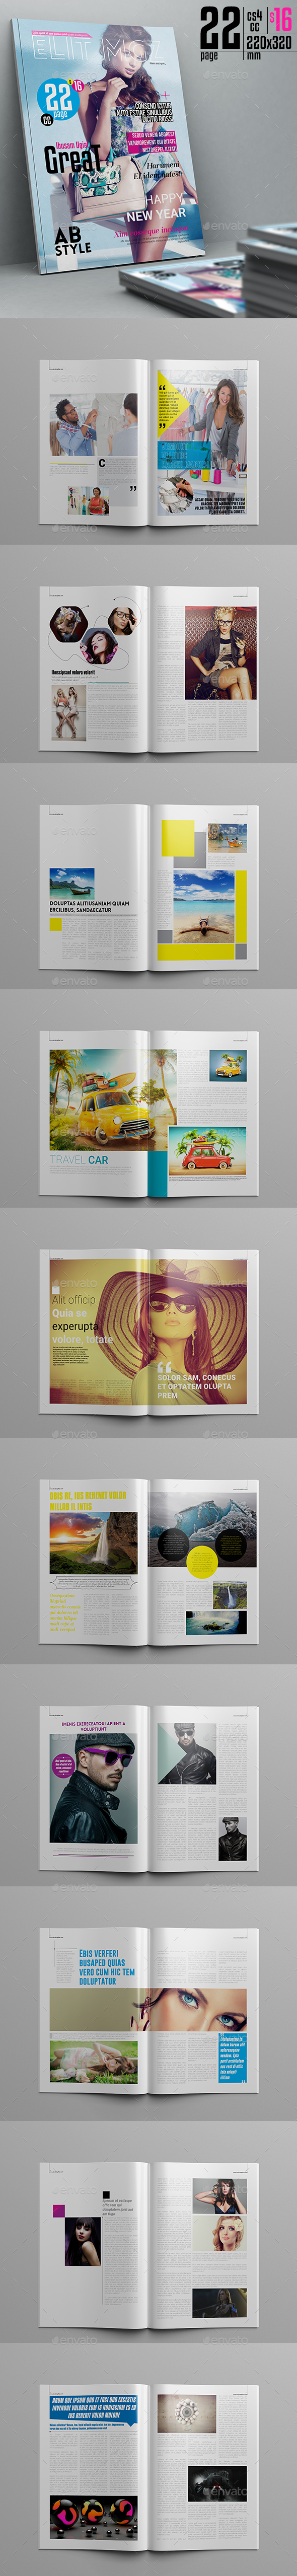 Elit Magazine Template 22 Pages - Magazines Print Templates